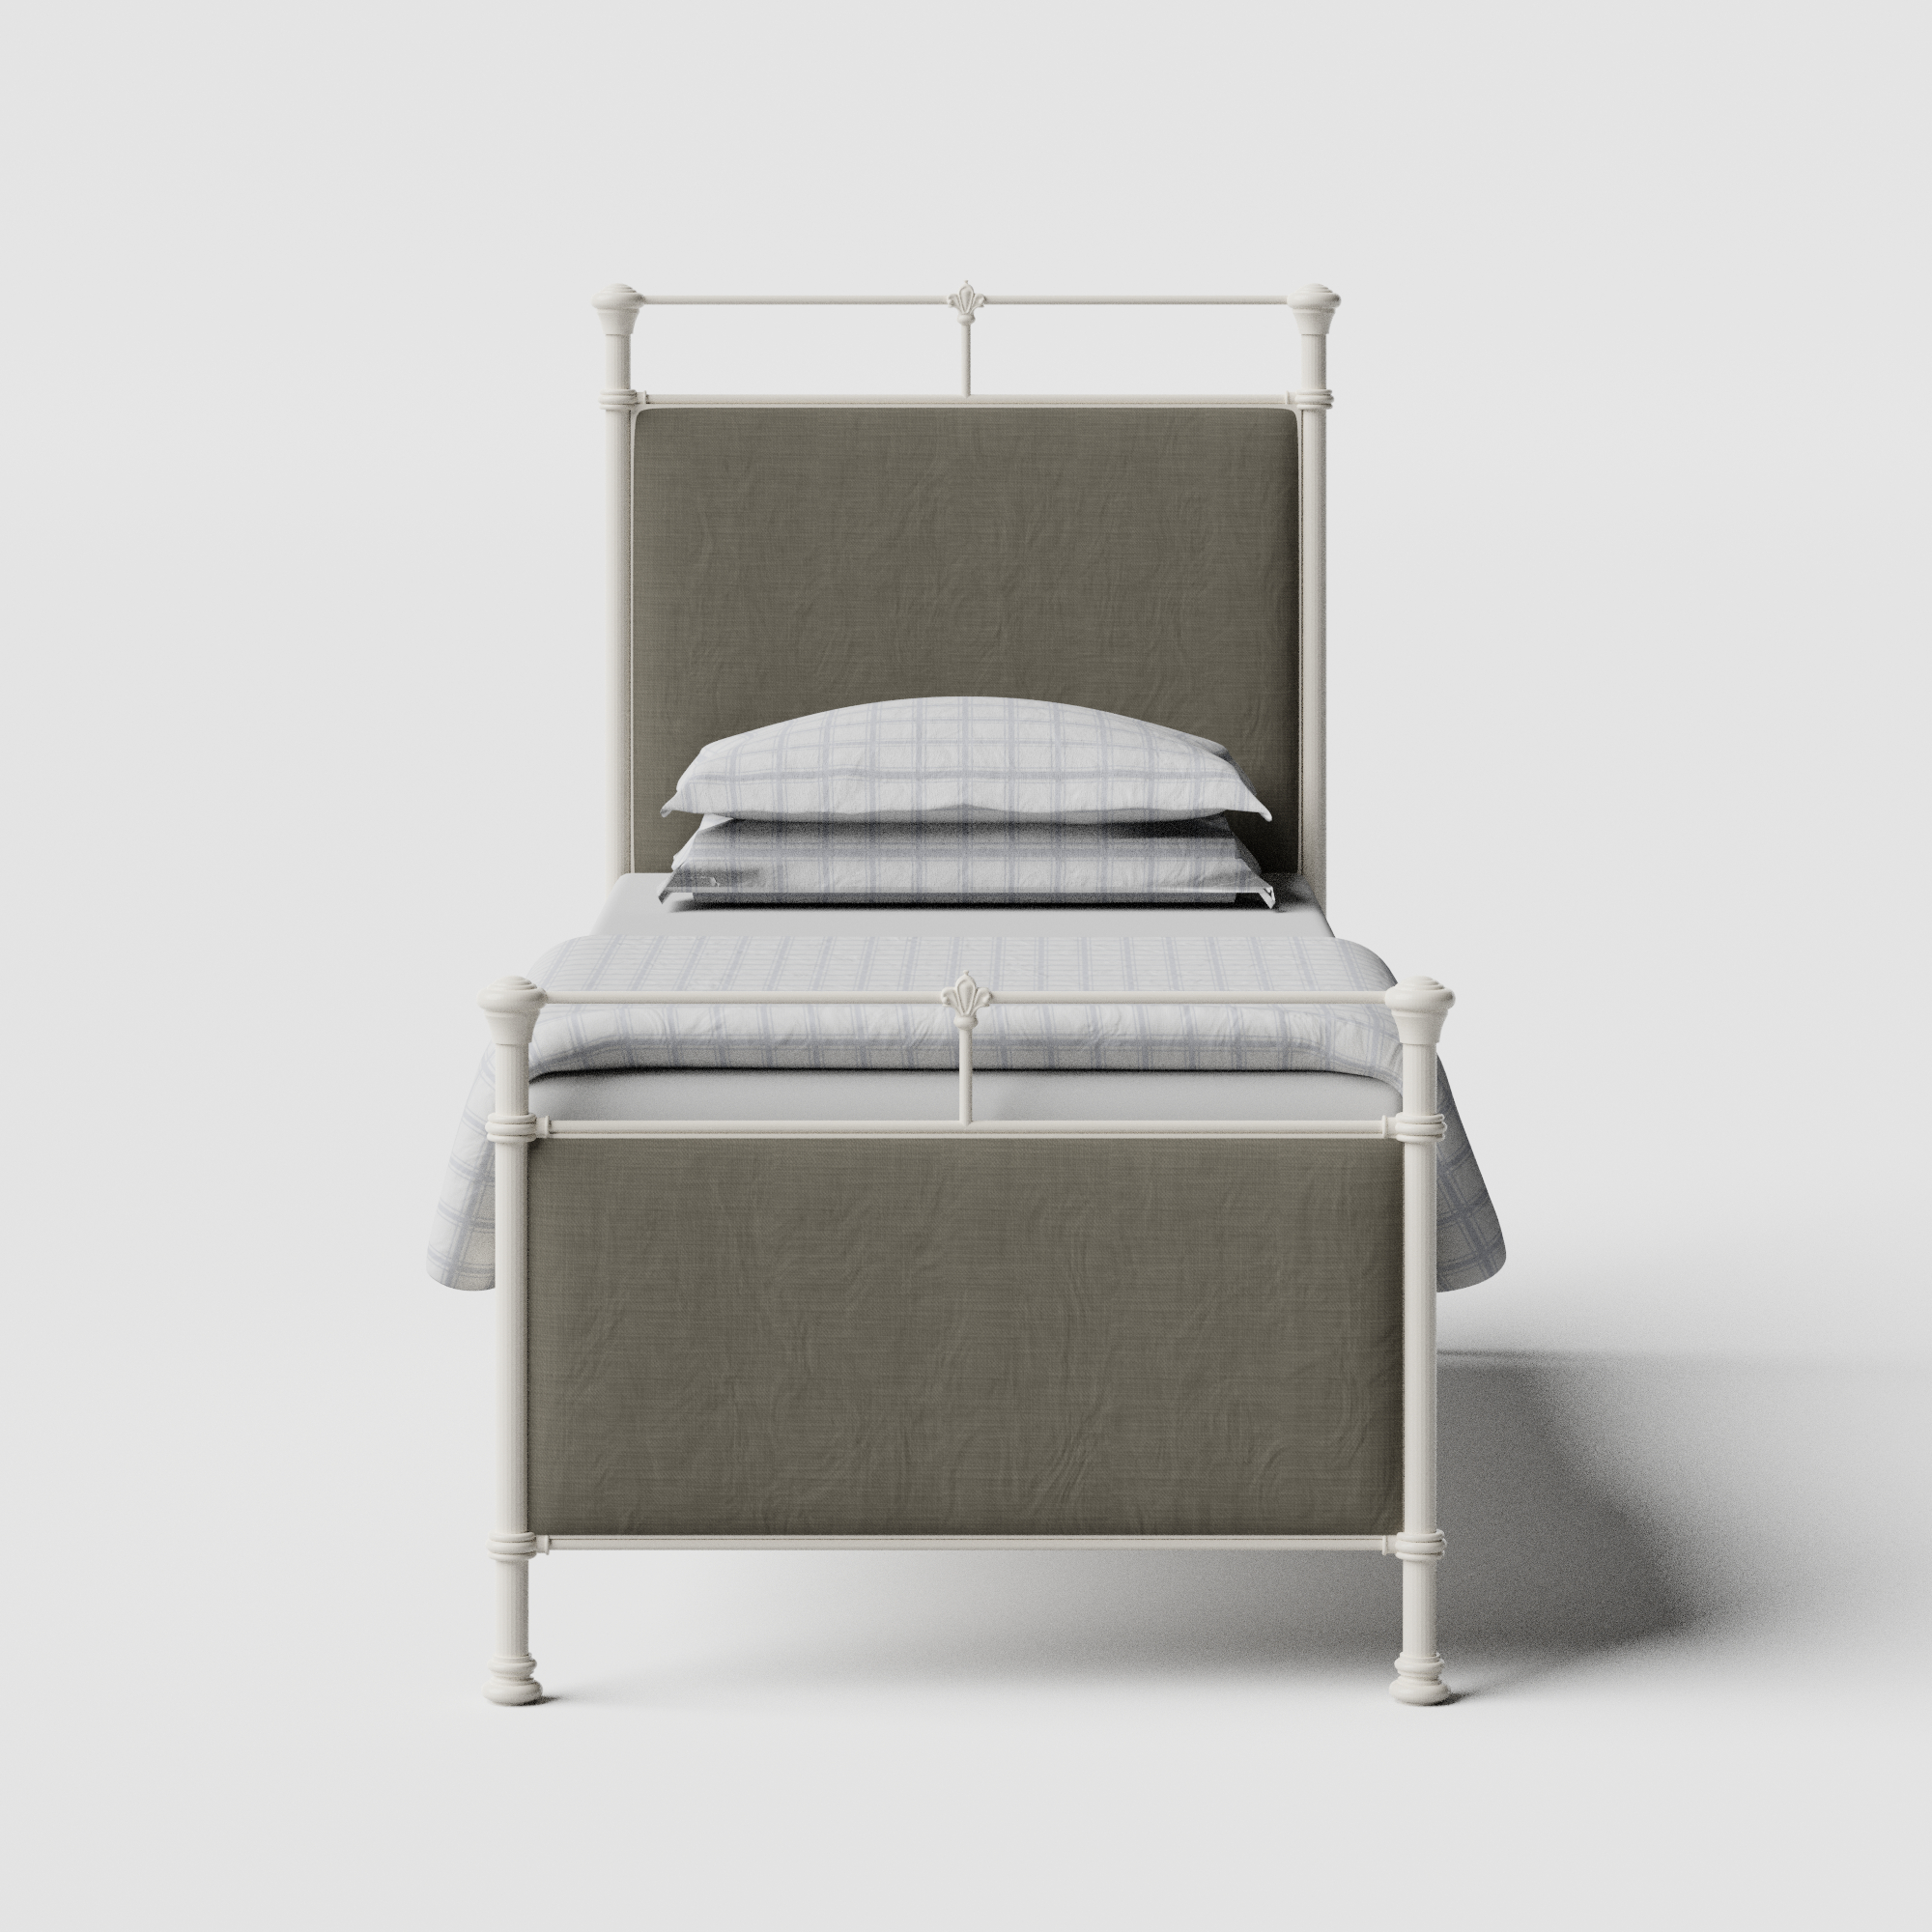 Nancy iron/metal single bed in ivory